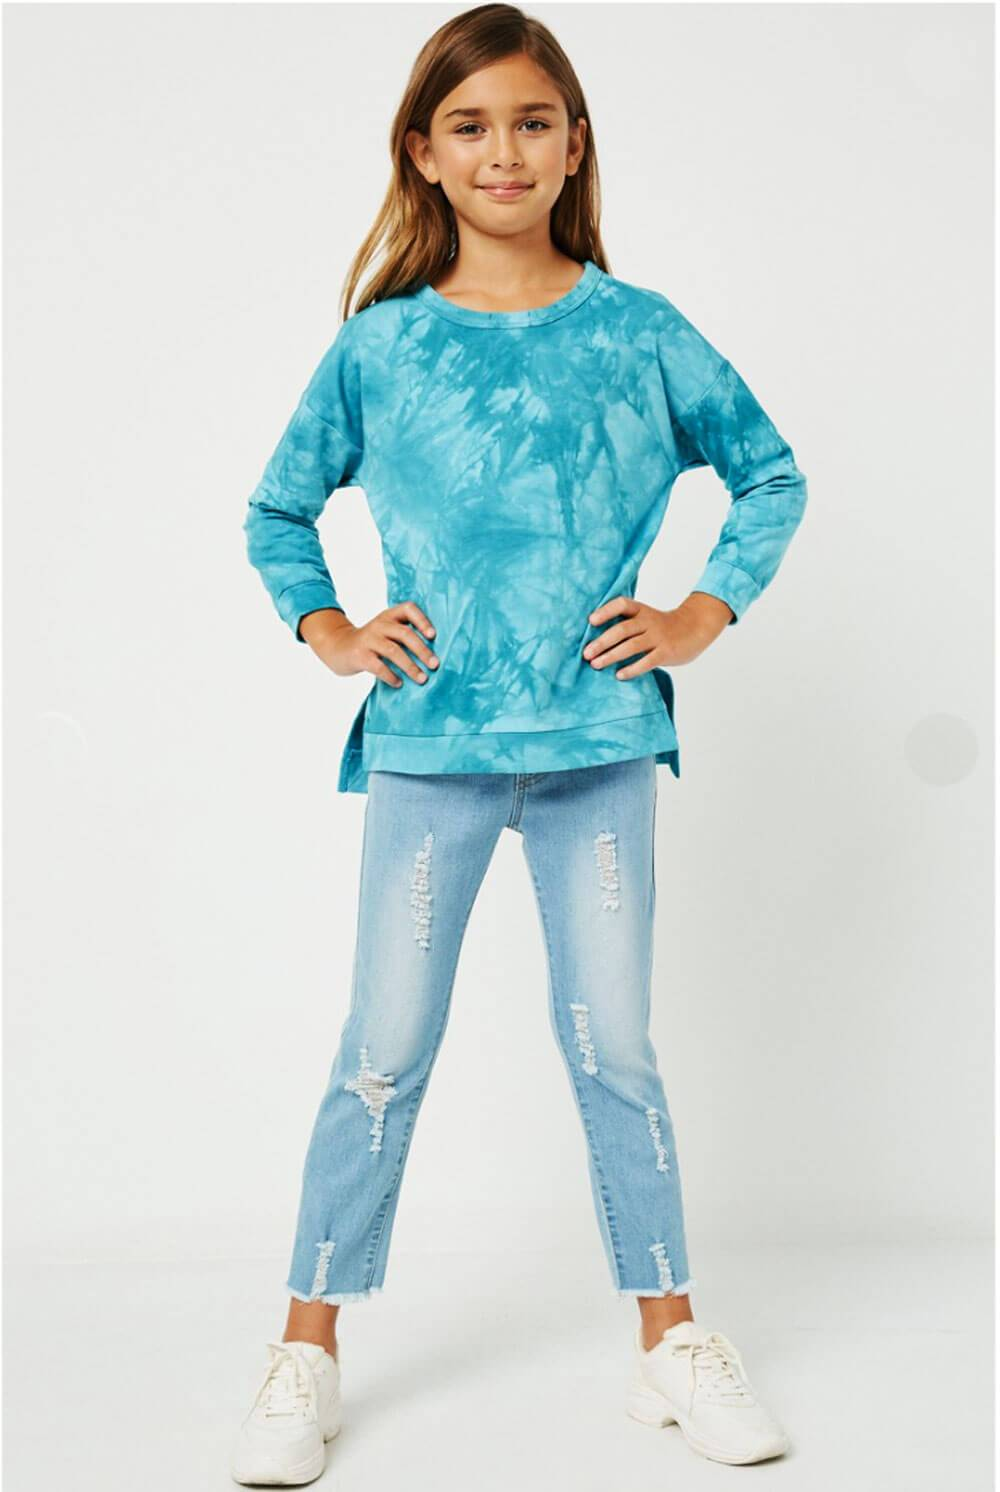 Girls Distressed Crew Neck Tie Dyed Sweatshirt teal full MILK MONEY Kids